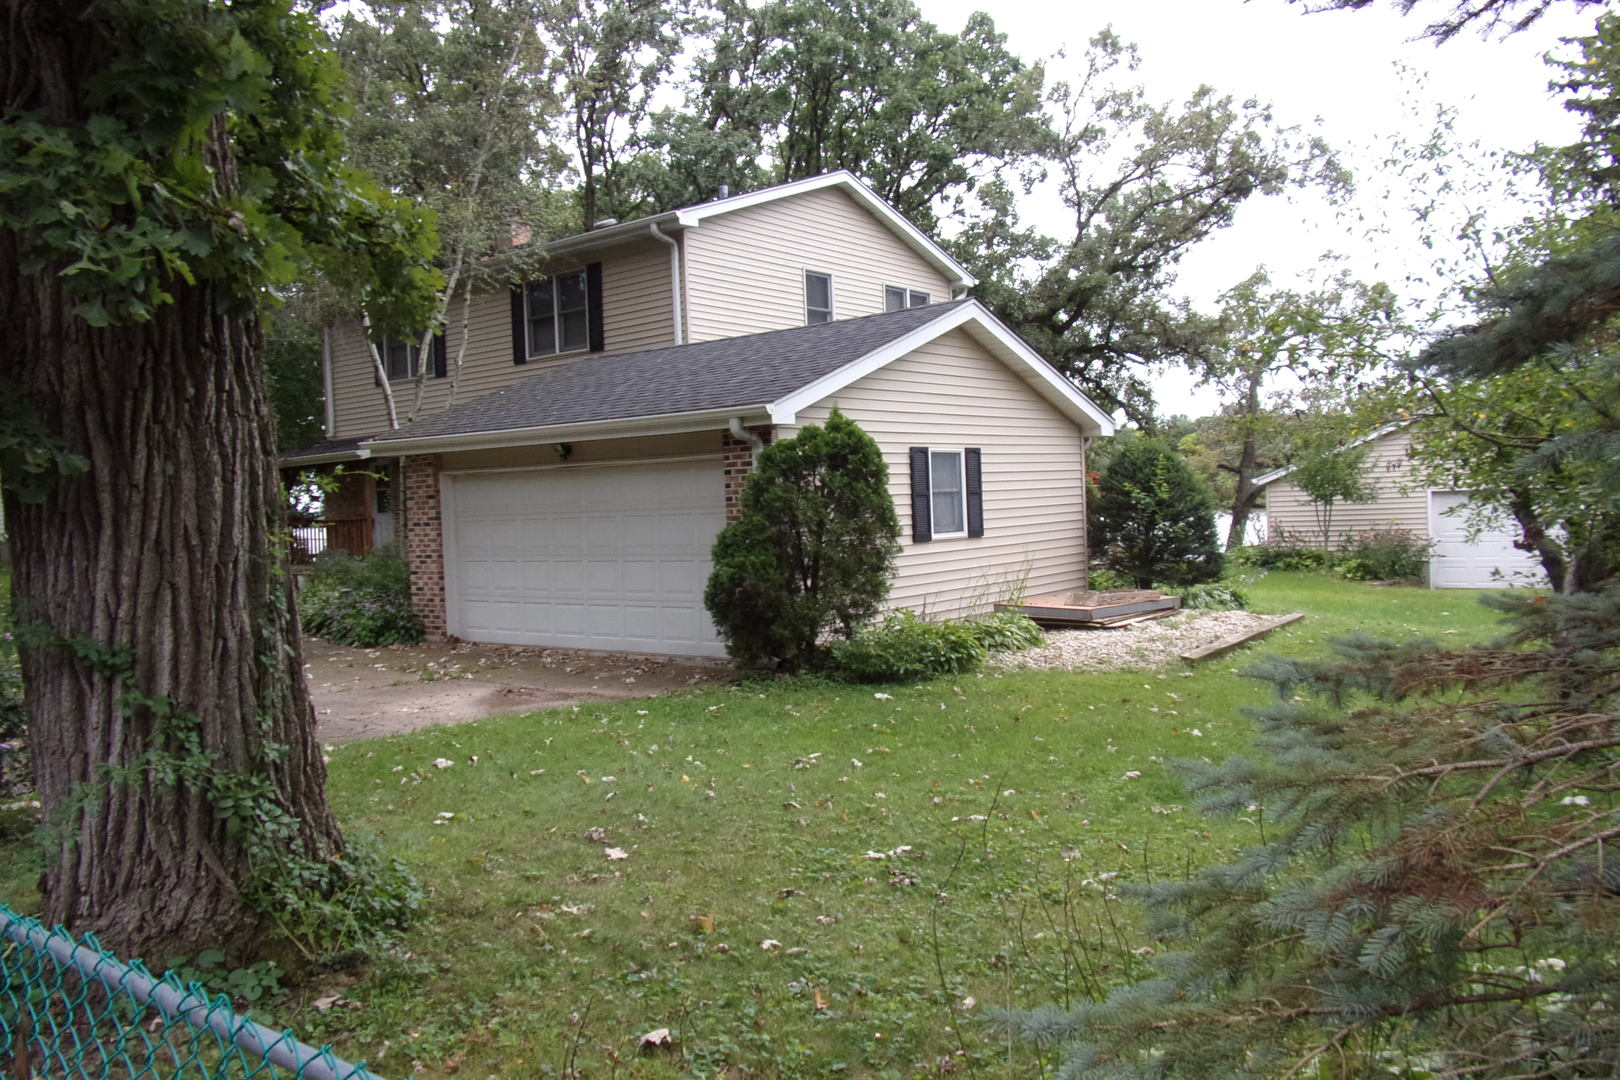 4819 East Lake Shore, Wonder Lake, Illinois, 60097